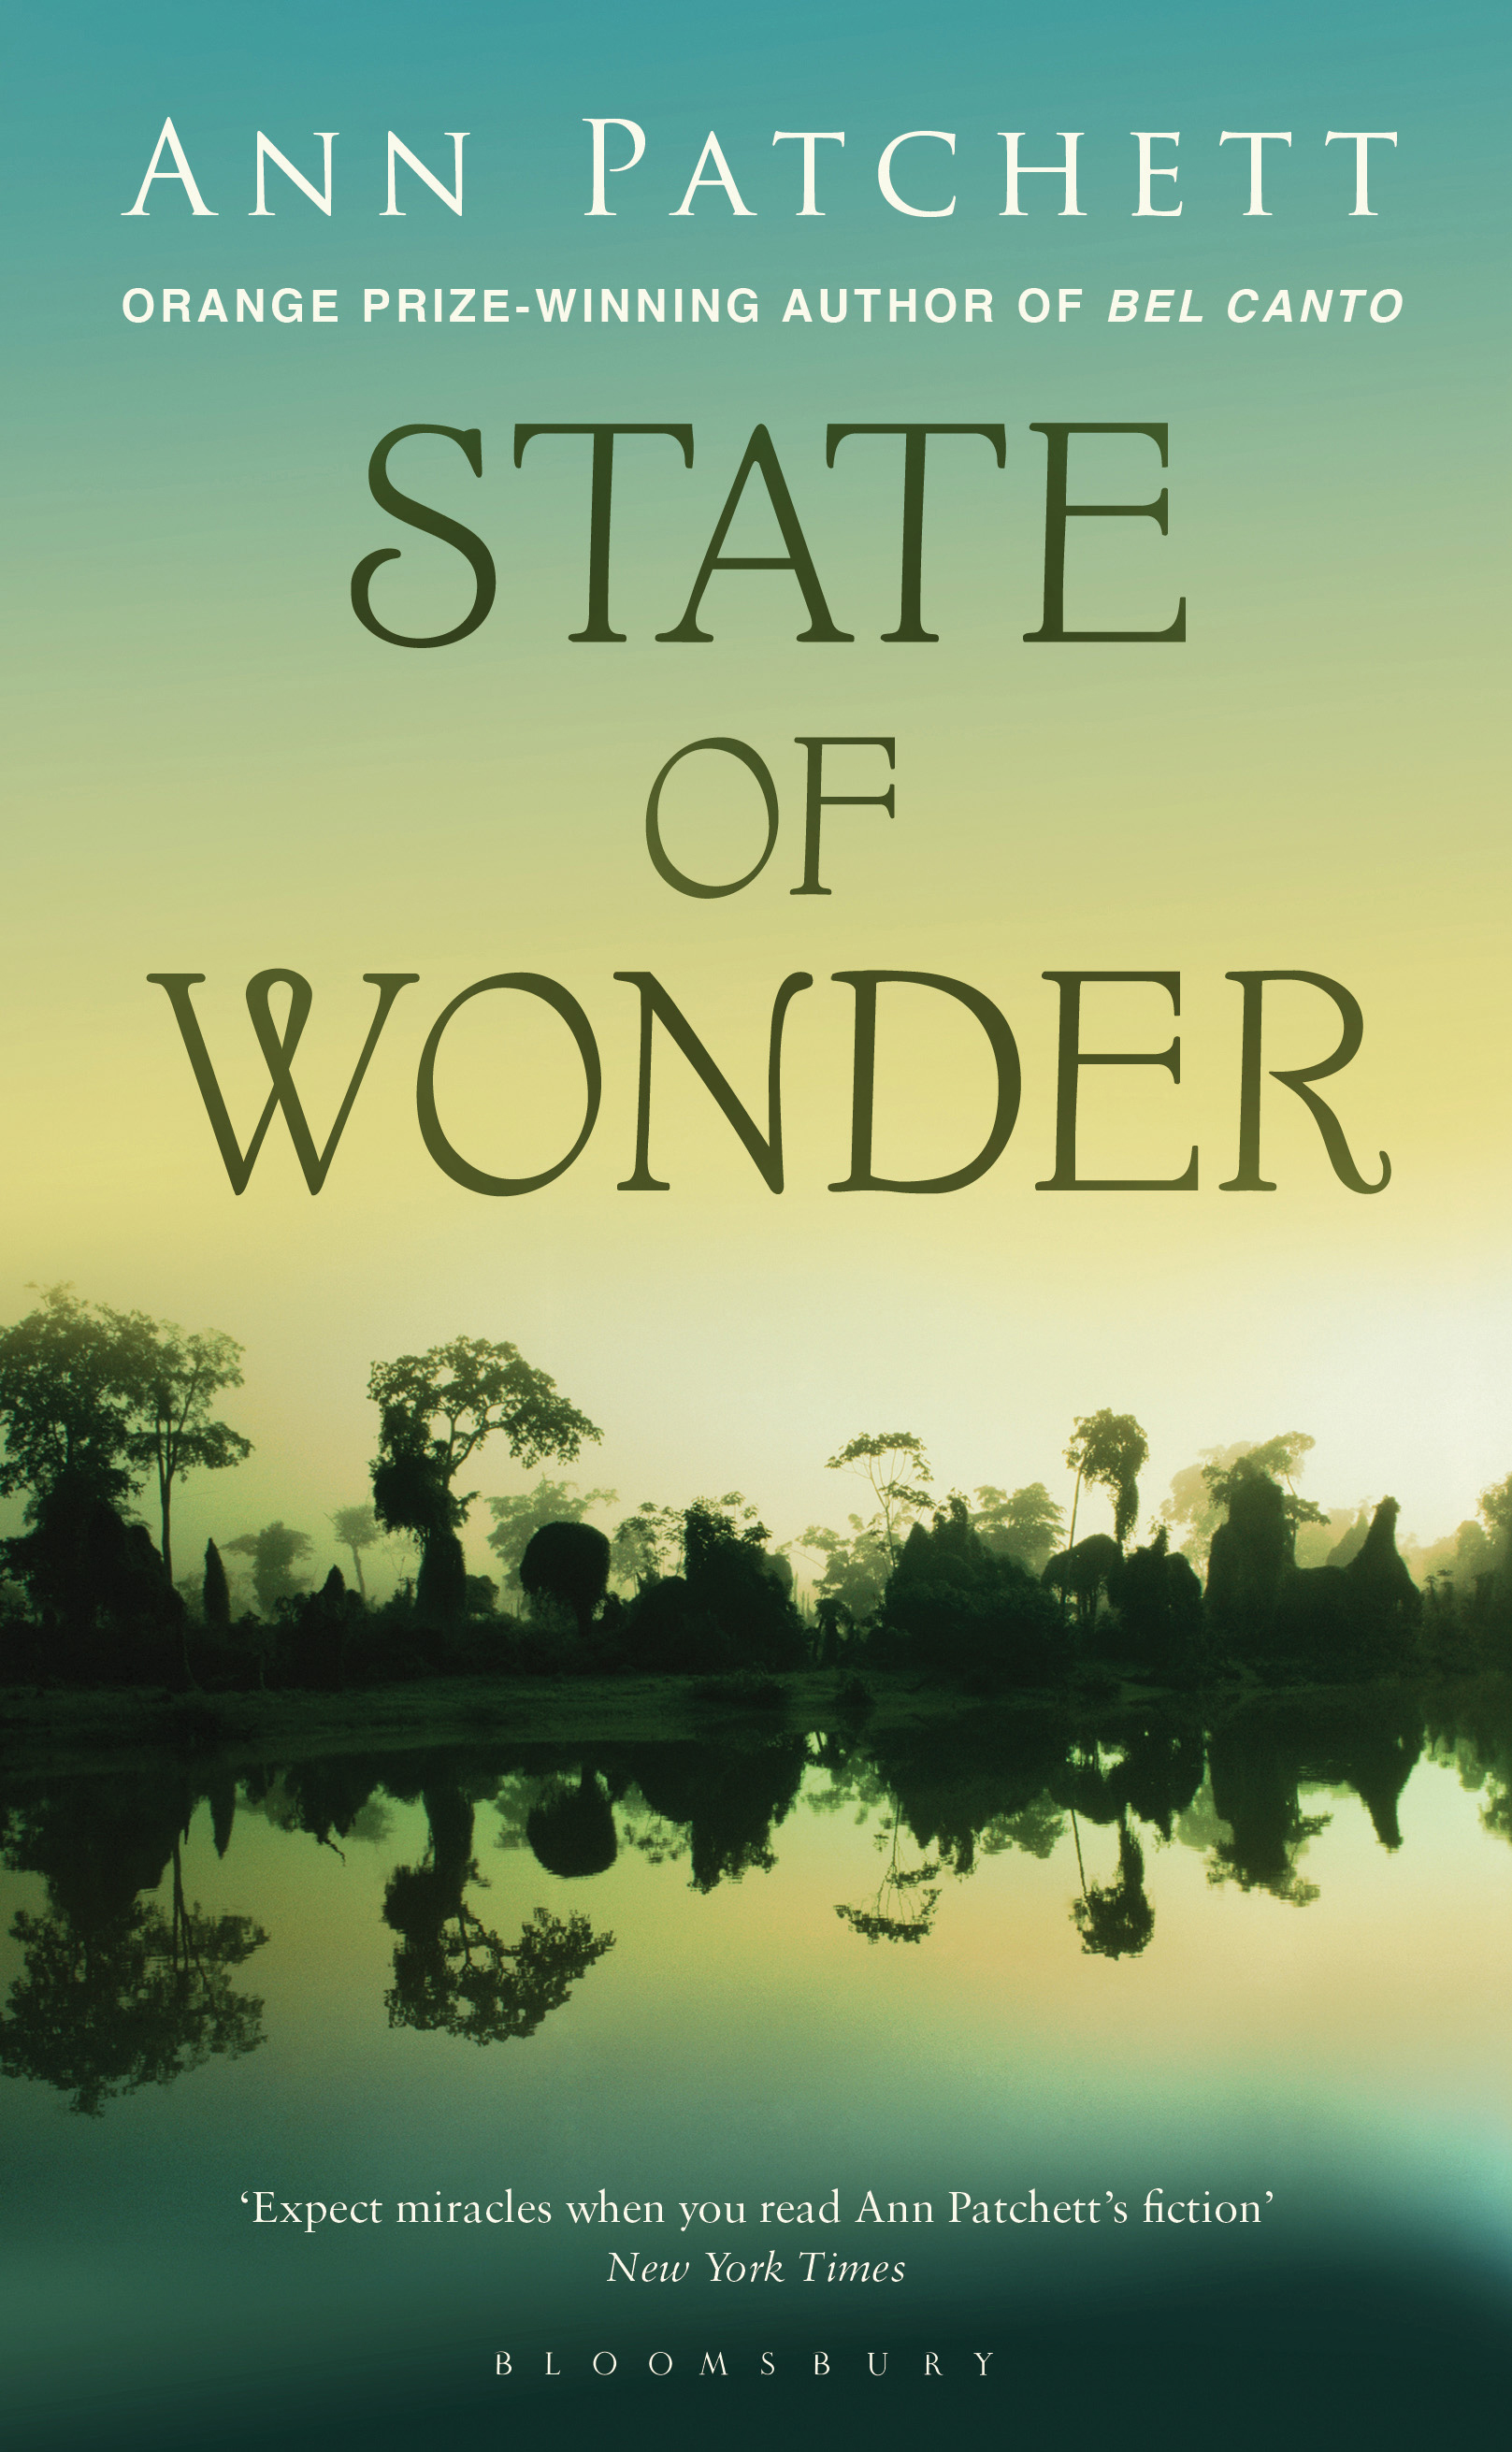 state of wonder ann patchet Ann patchett's new book, 'state of wonder,' is a tale of morality and miracles, science and sacrifice set in the amazonian jungle (marvin joseph/washington post) by neely tucker neely tucker.